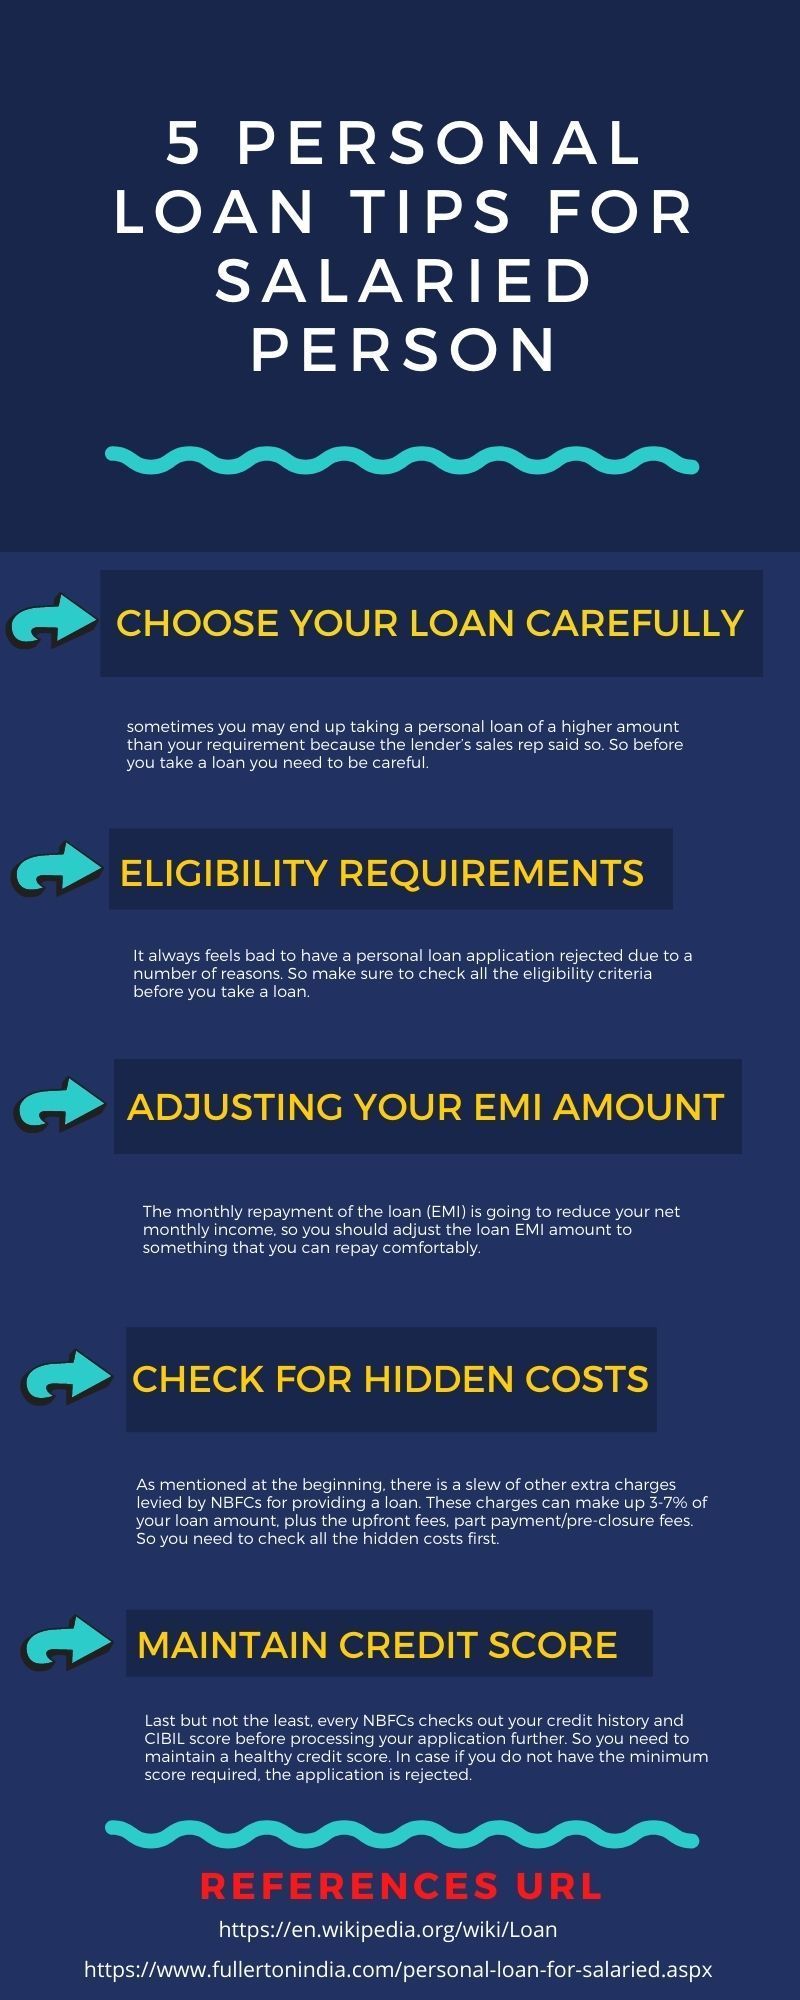 5 Personal Loan Tips For Salaried Person In 2020 Personal Loans Personal Loans Online Loan